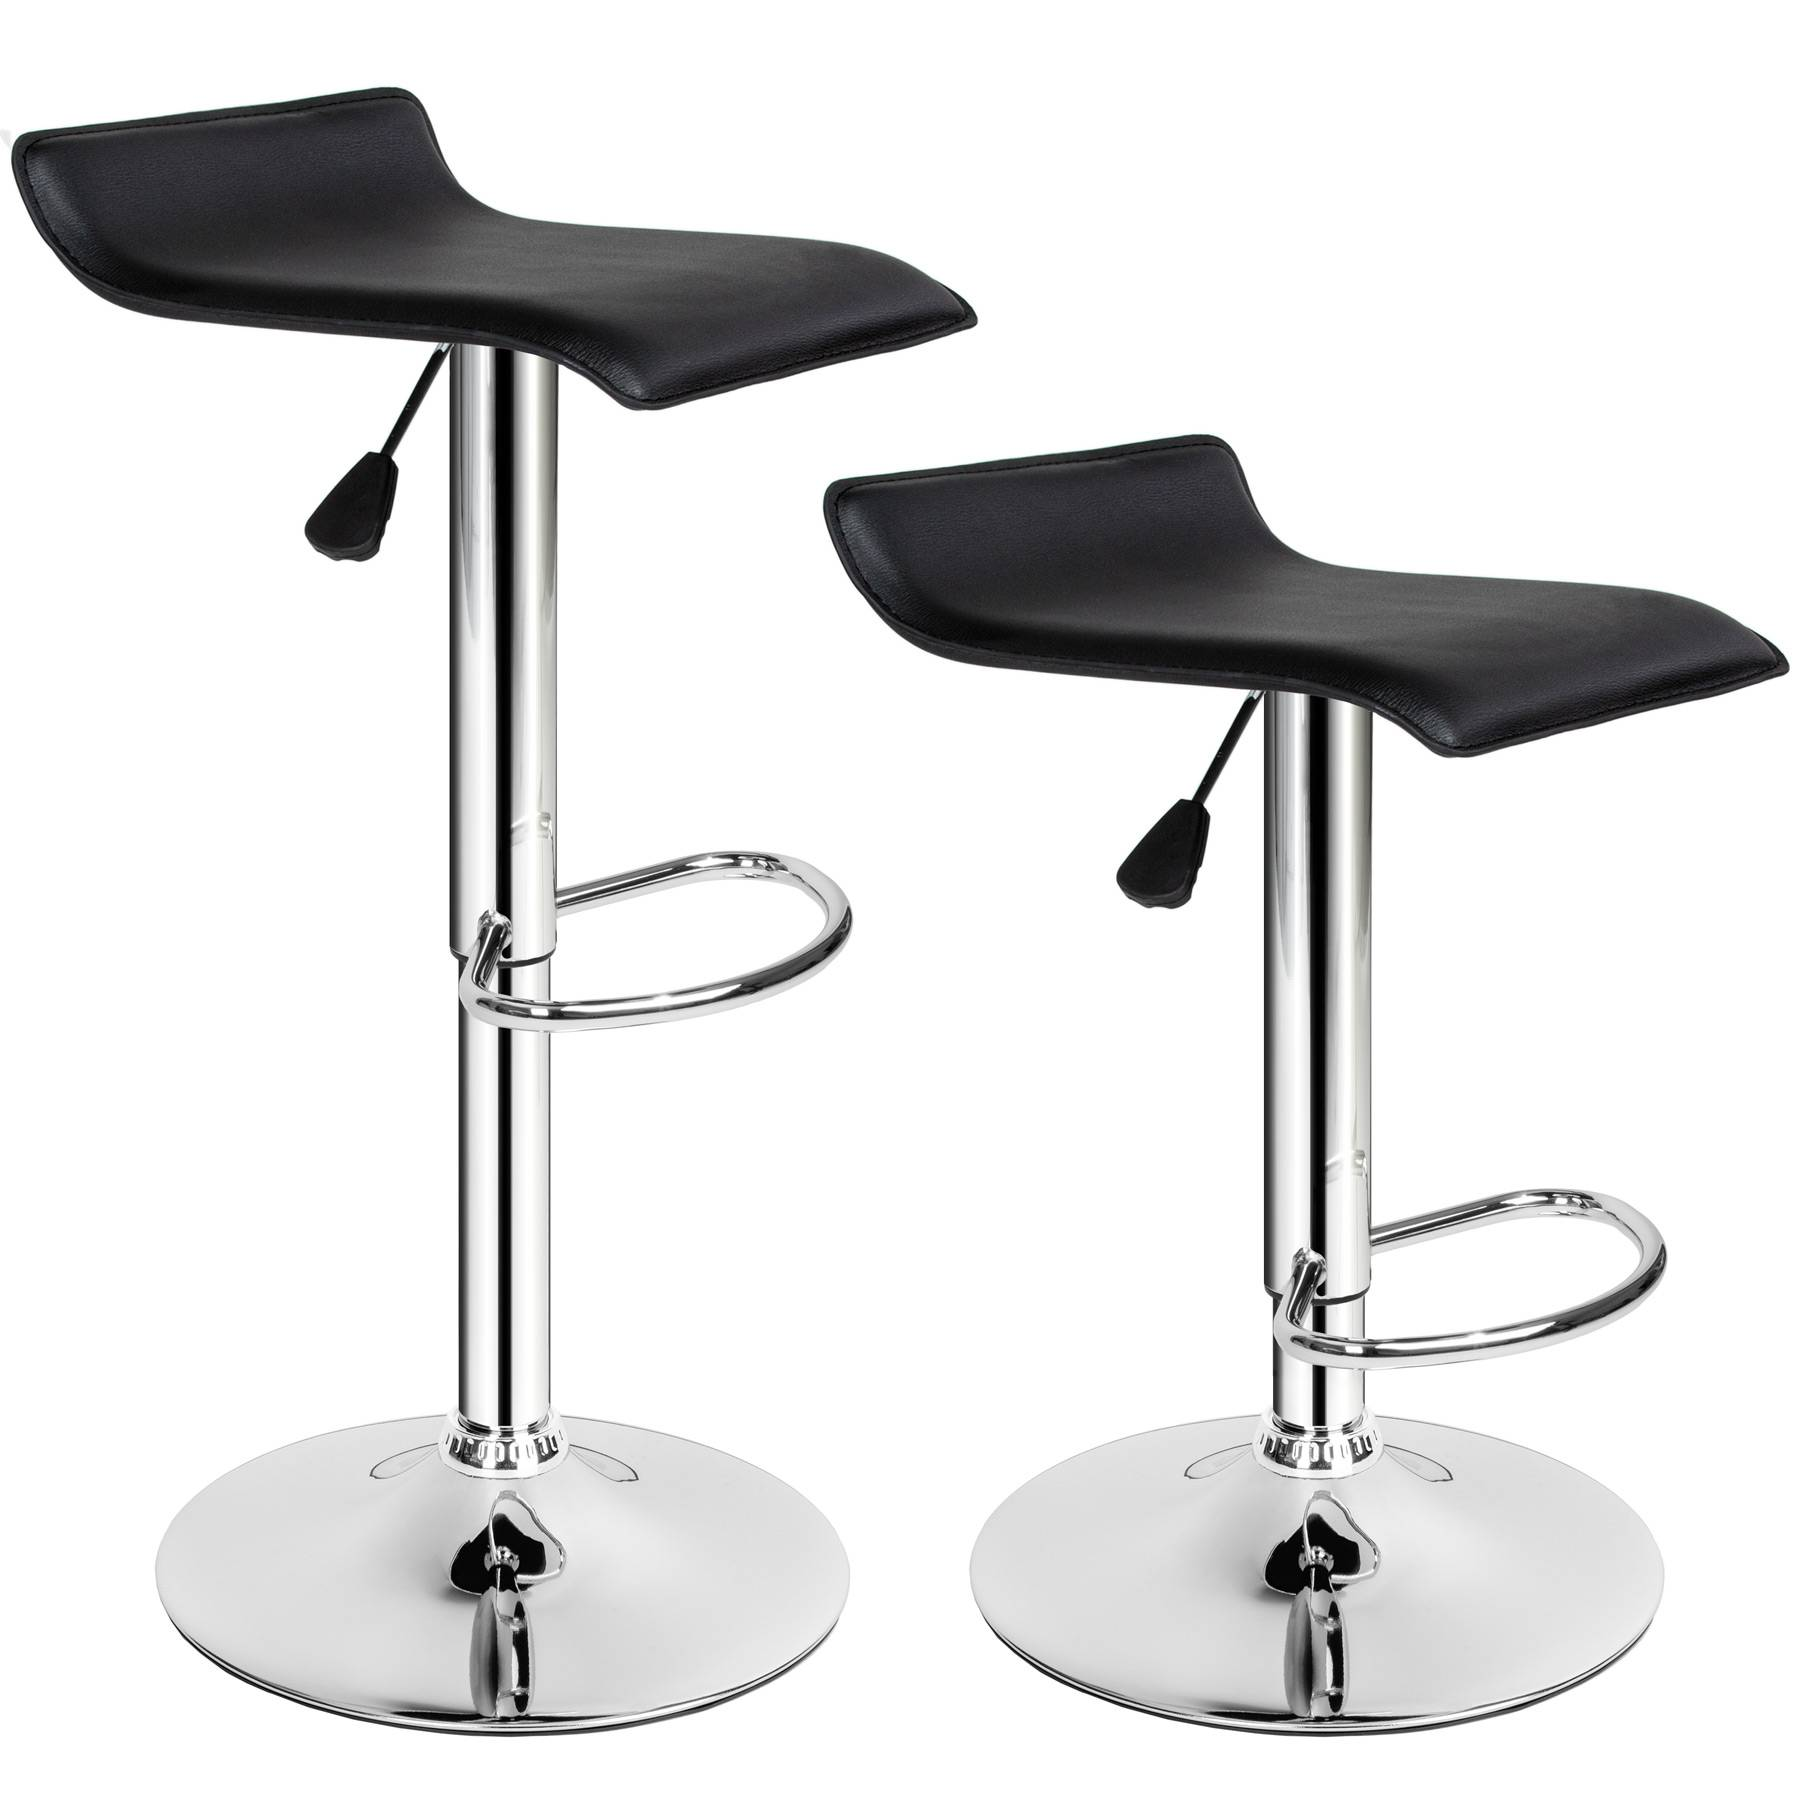 tectake 2 bar stools Lars made of artificial leather - black